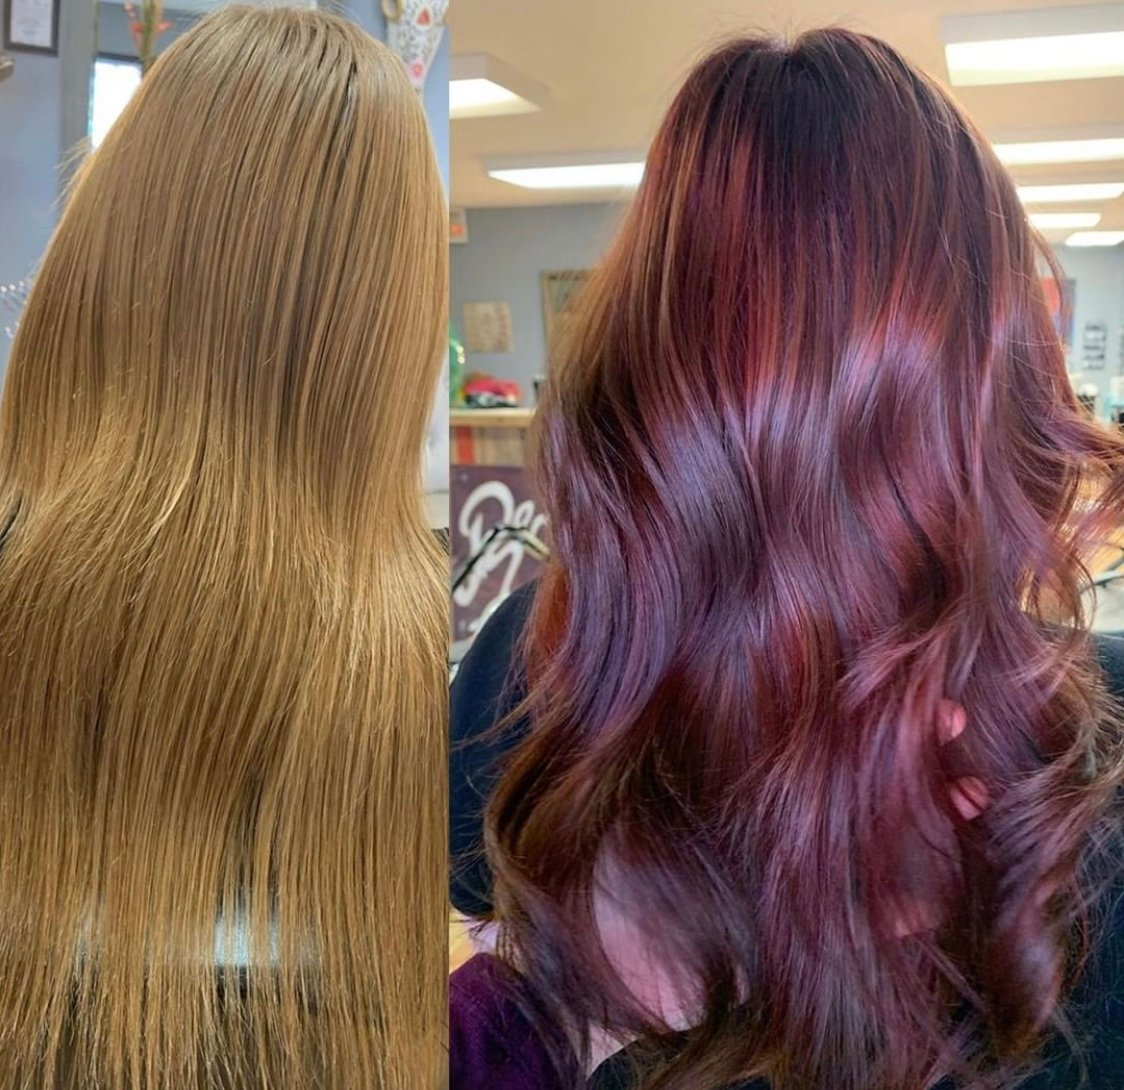 Before and After Gallery: Pravana's New ChromaSilk Express Tones After Dark